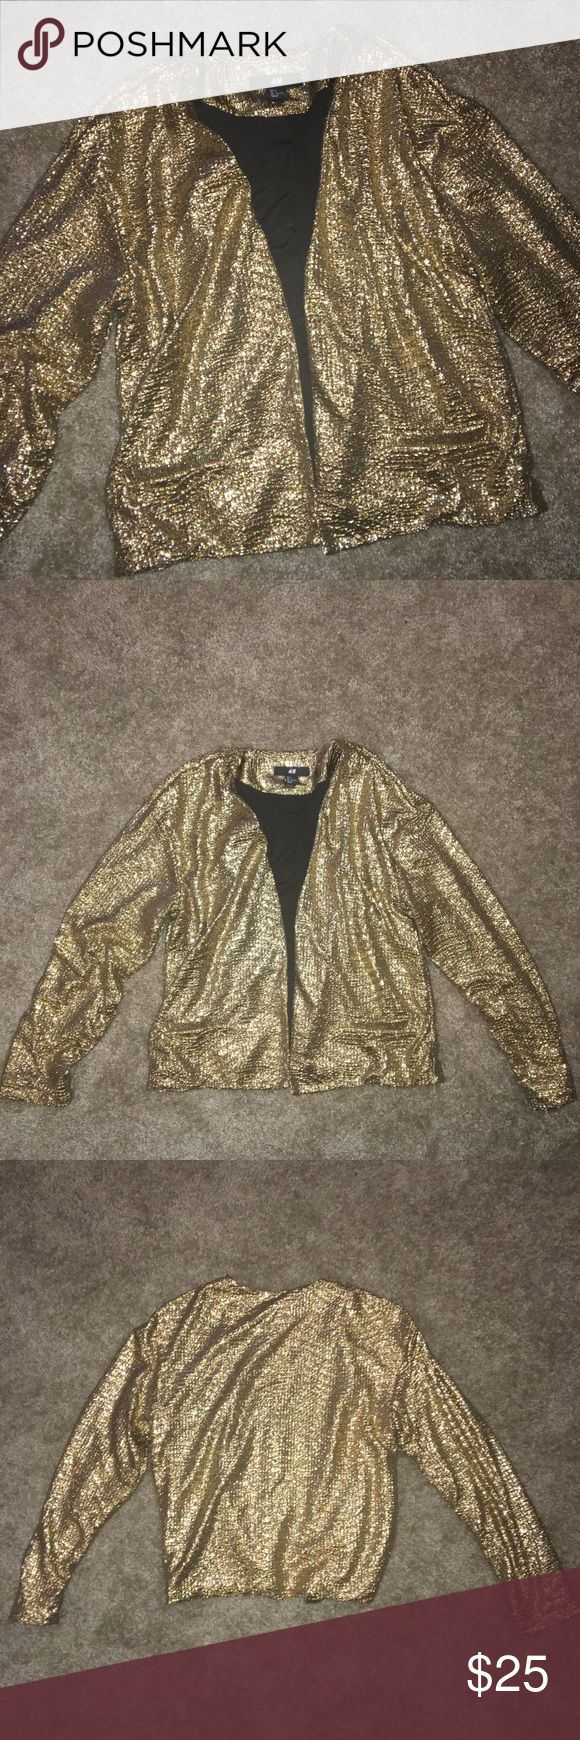 New H&M Metallic Gold Cardigan Jacket Small New without tags never worn.  Fully open in the front with no fastening.  Two small pockets in the front are not actual pockets.  Jacket is lightweight with midi sleeves that stop right above the wrist.  Pit to pit is is 17.5 inches.  Sleeves are 21 inches, measurement from shoulder to bottom is 21 inches. H&M Jackets & Coats